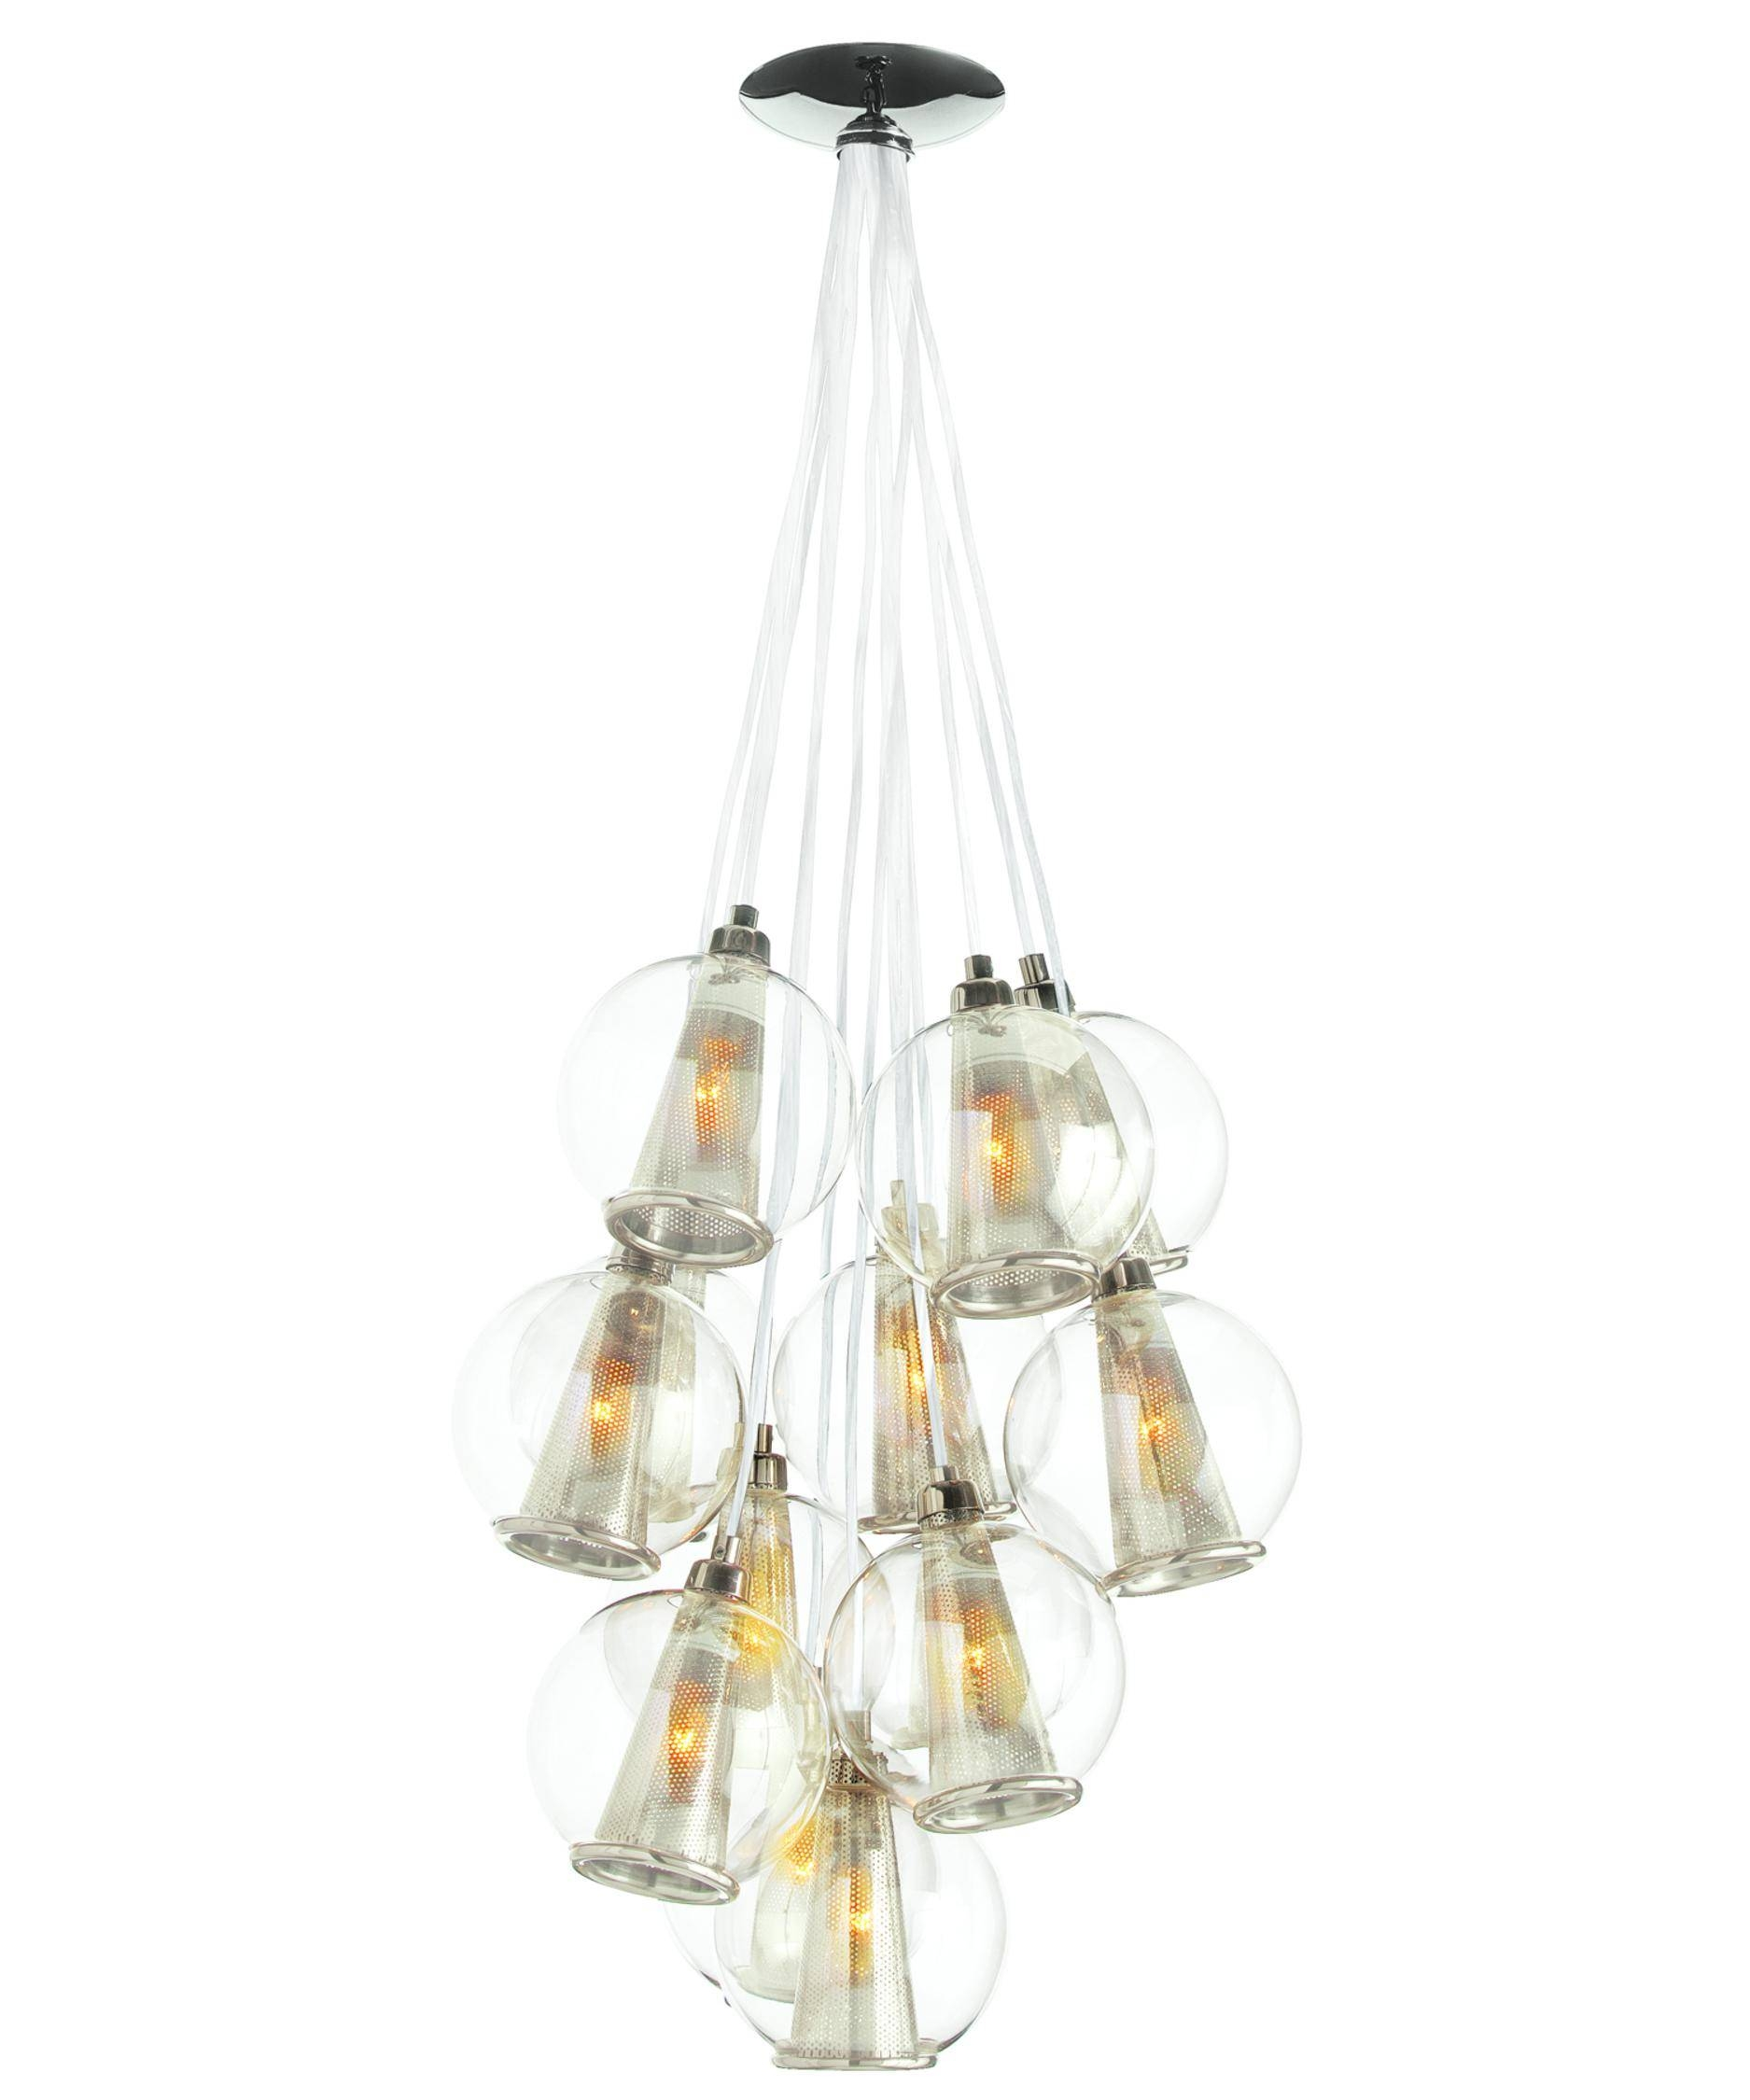 Arteriors Home Dk89921 Caviar 18 Inch Wide 1 Light Chandelier intended for Caviar Lights Fixtures (Image 9 of 15)